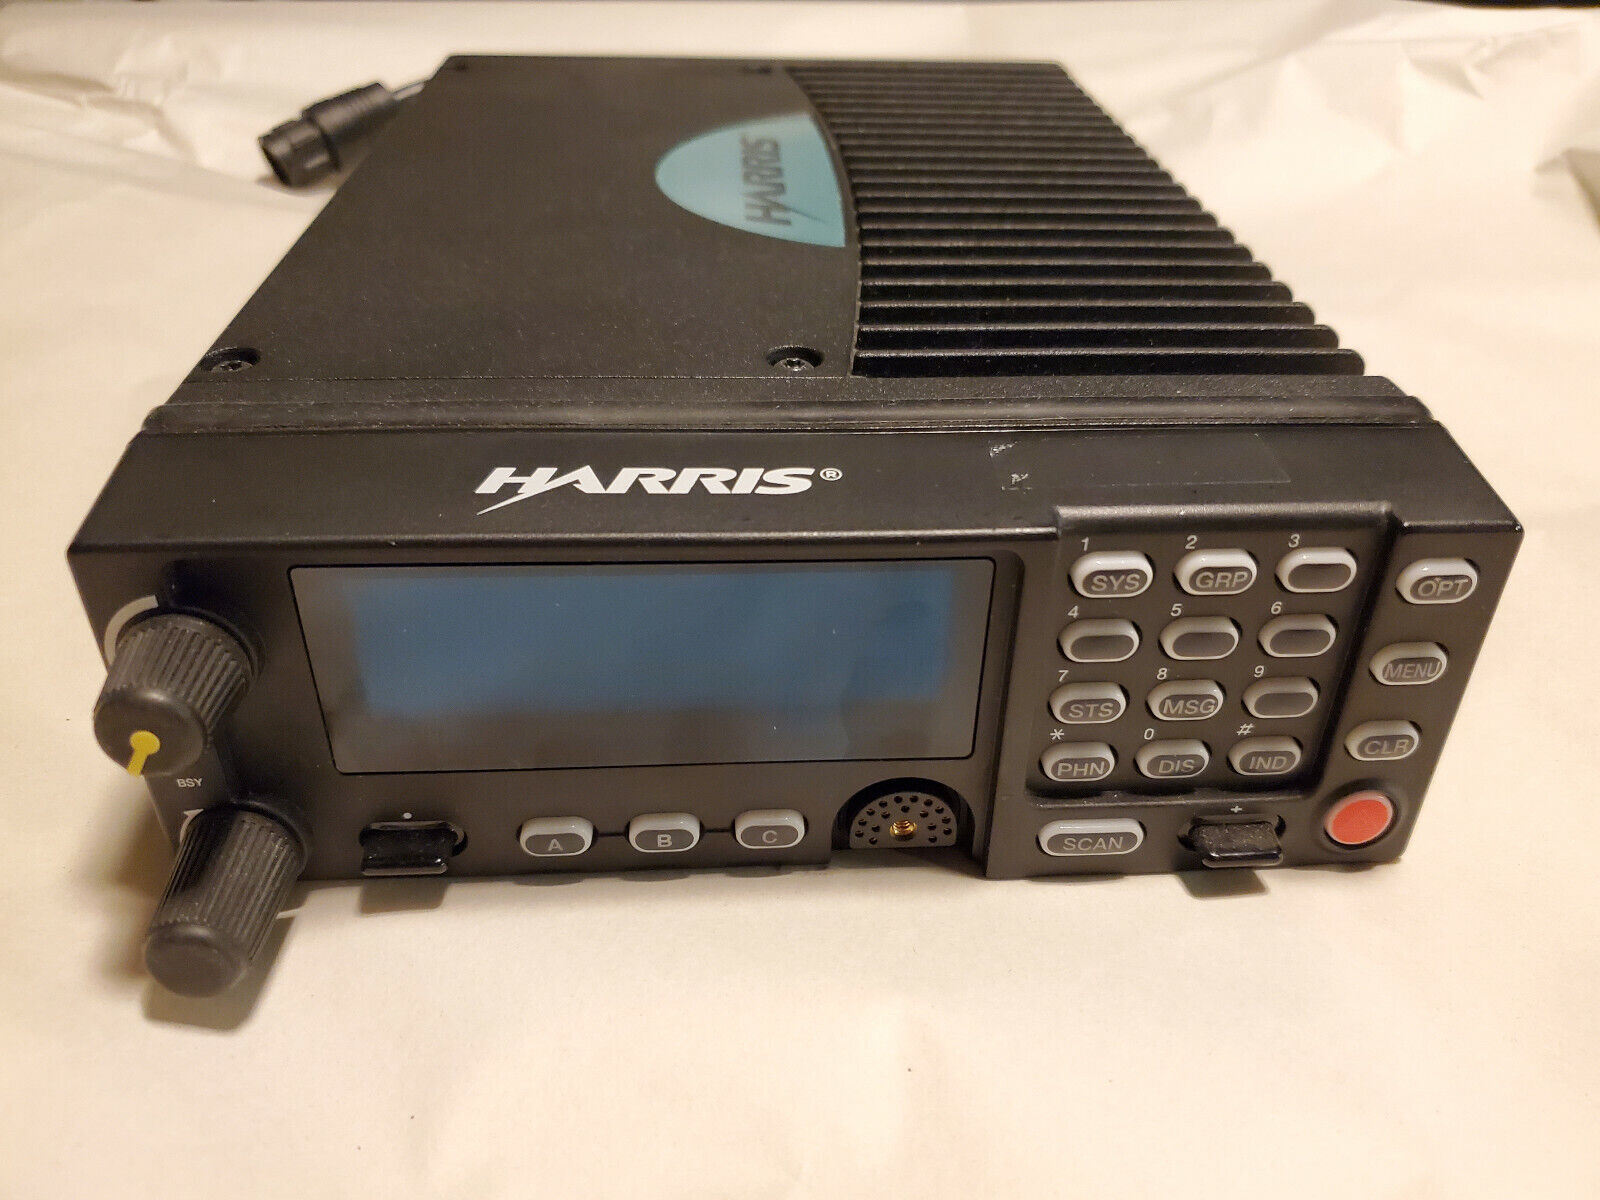 M/A Com - Harris M7300 Mobile Radio 7/800MHz **P25 Trunking Phase 2** AES. Buy it now for 460.00